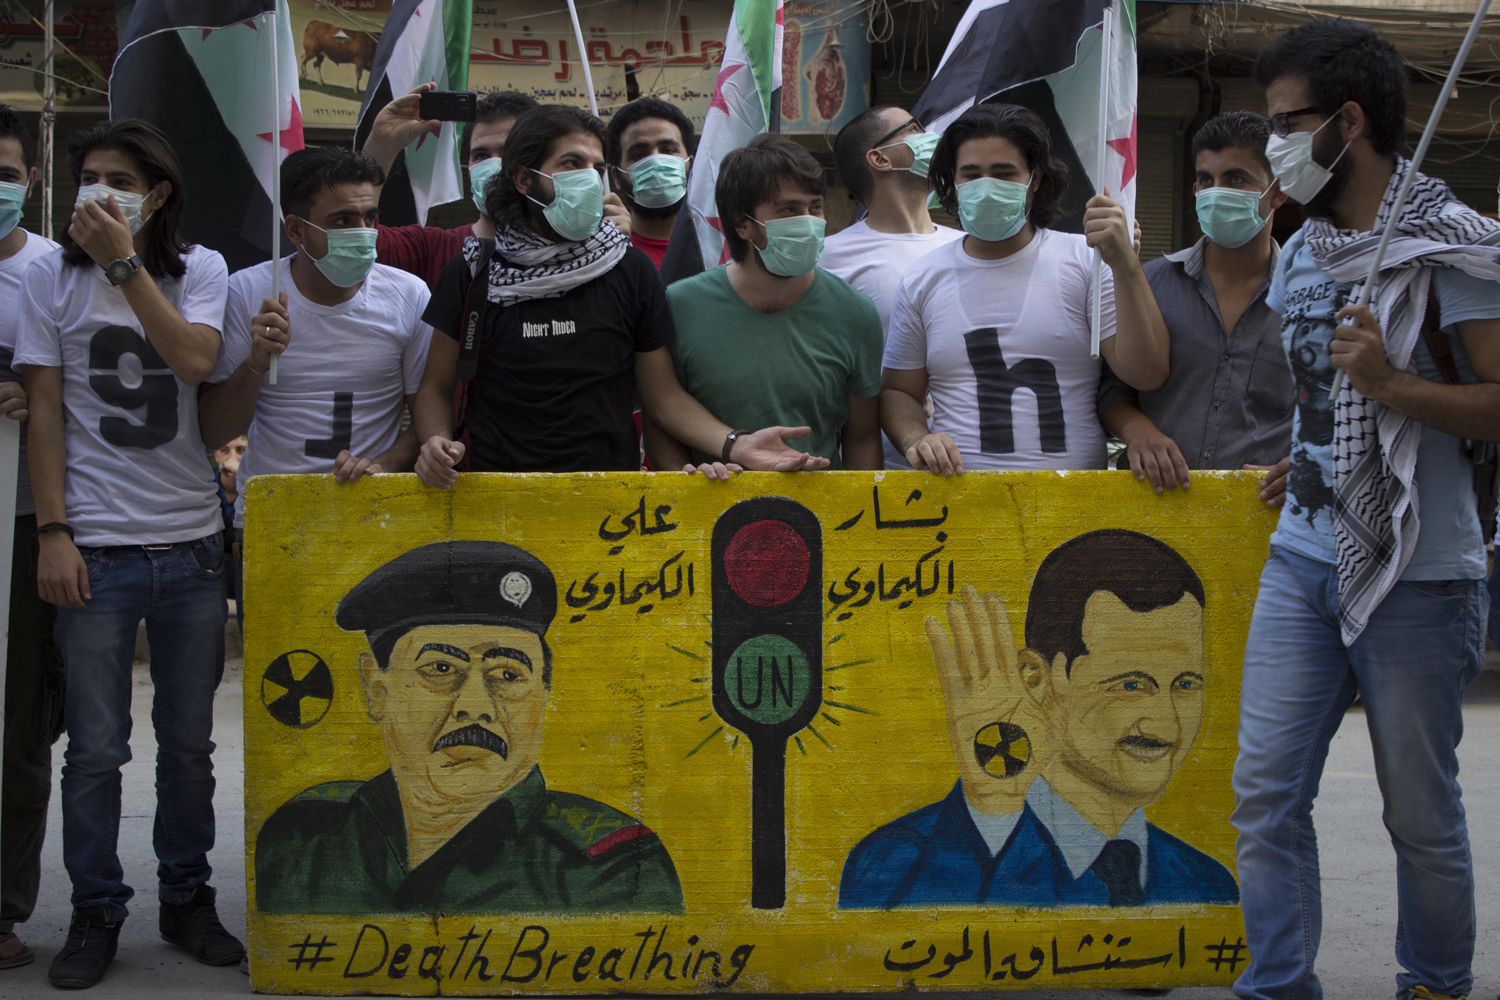 Protesters stand in the first anniversary of the chemical massacre in East Ghota, where hundreds of civilians were killed, in Aleppo, Syria on August 21, 2014.